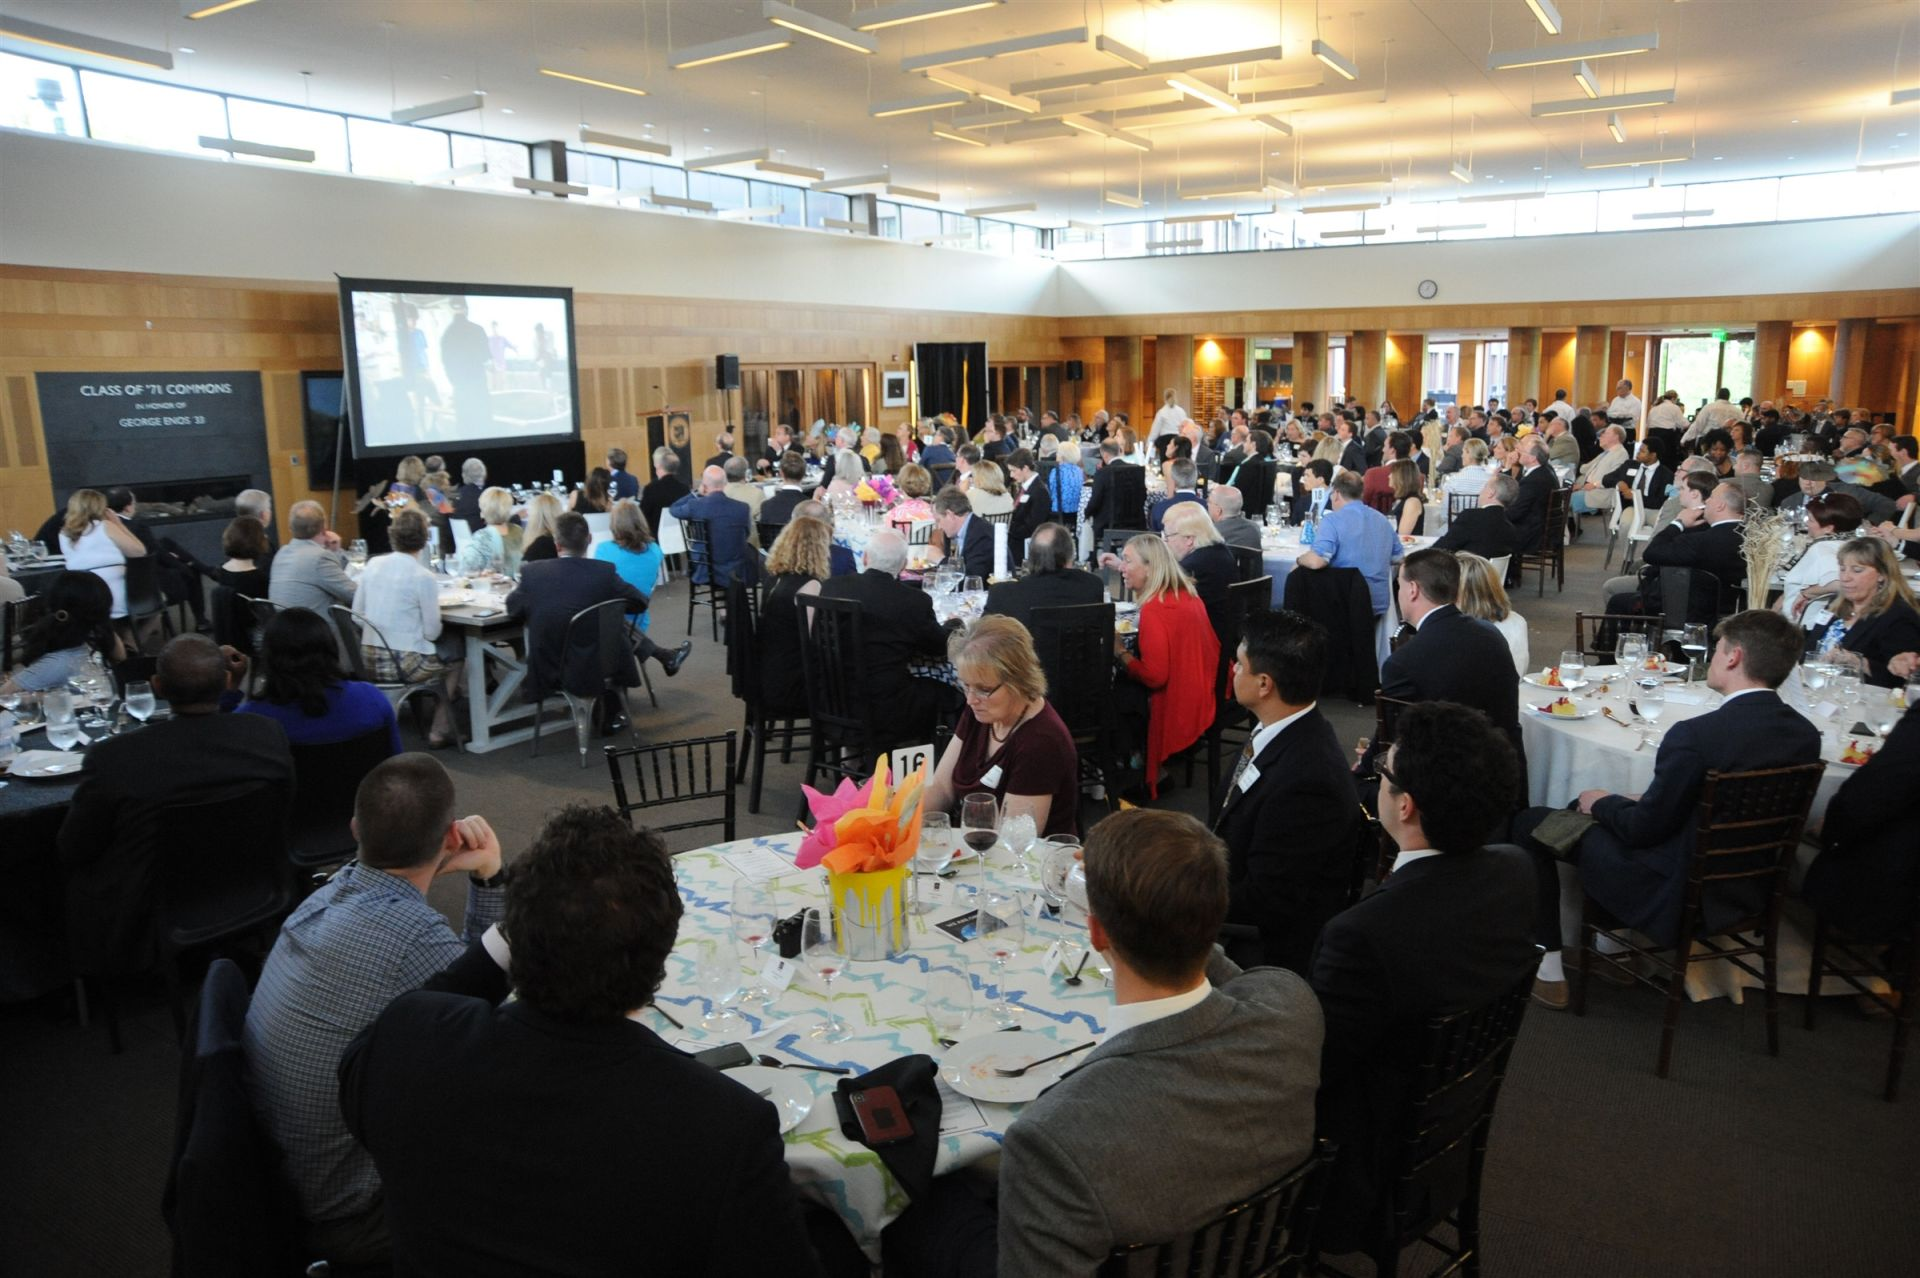 More than 250 former Strnad Fellows and their families gathered to celebrate the 50-year anniversary.